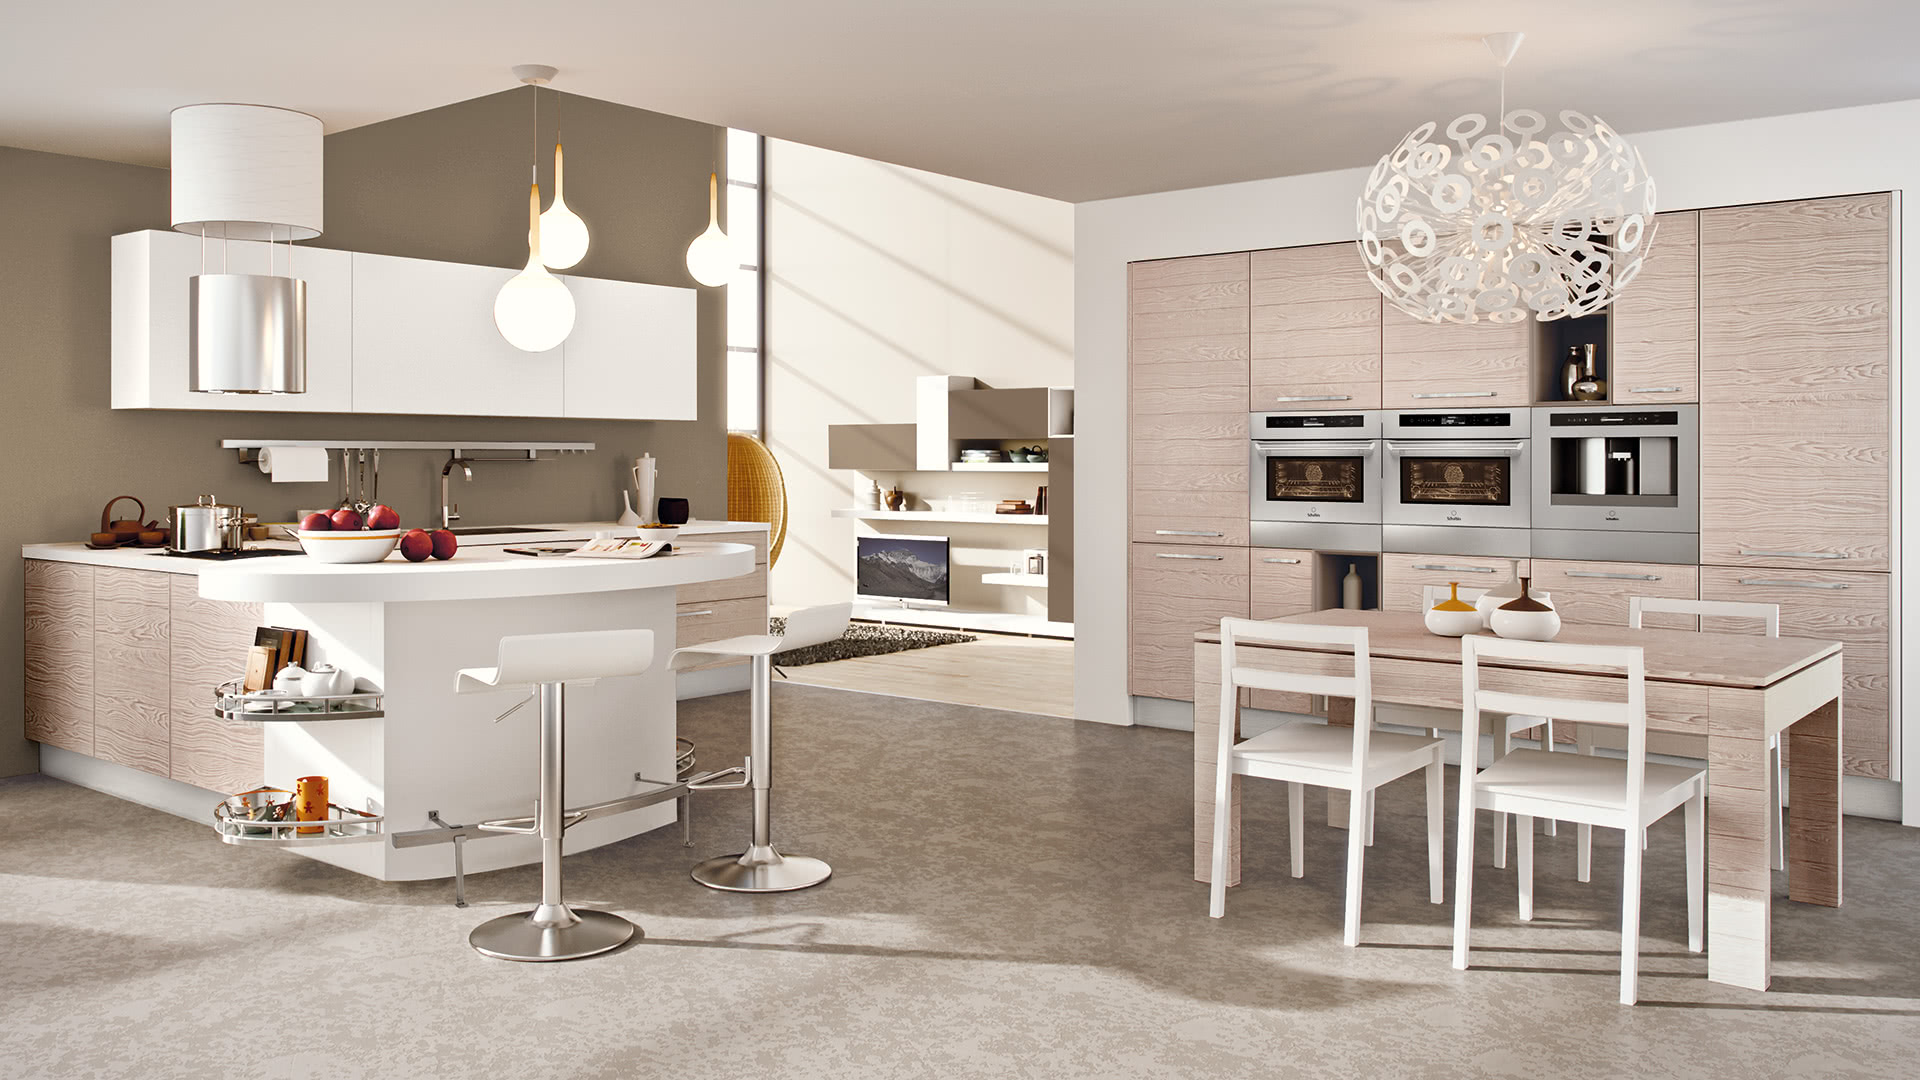 Best Cucina Lube Adele Contemporary - Lepicentre.info - lepicentre.info